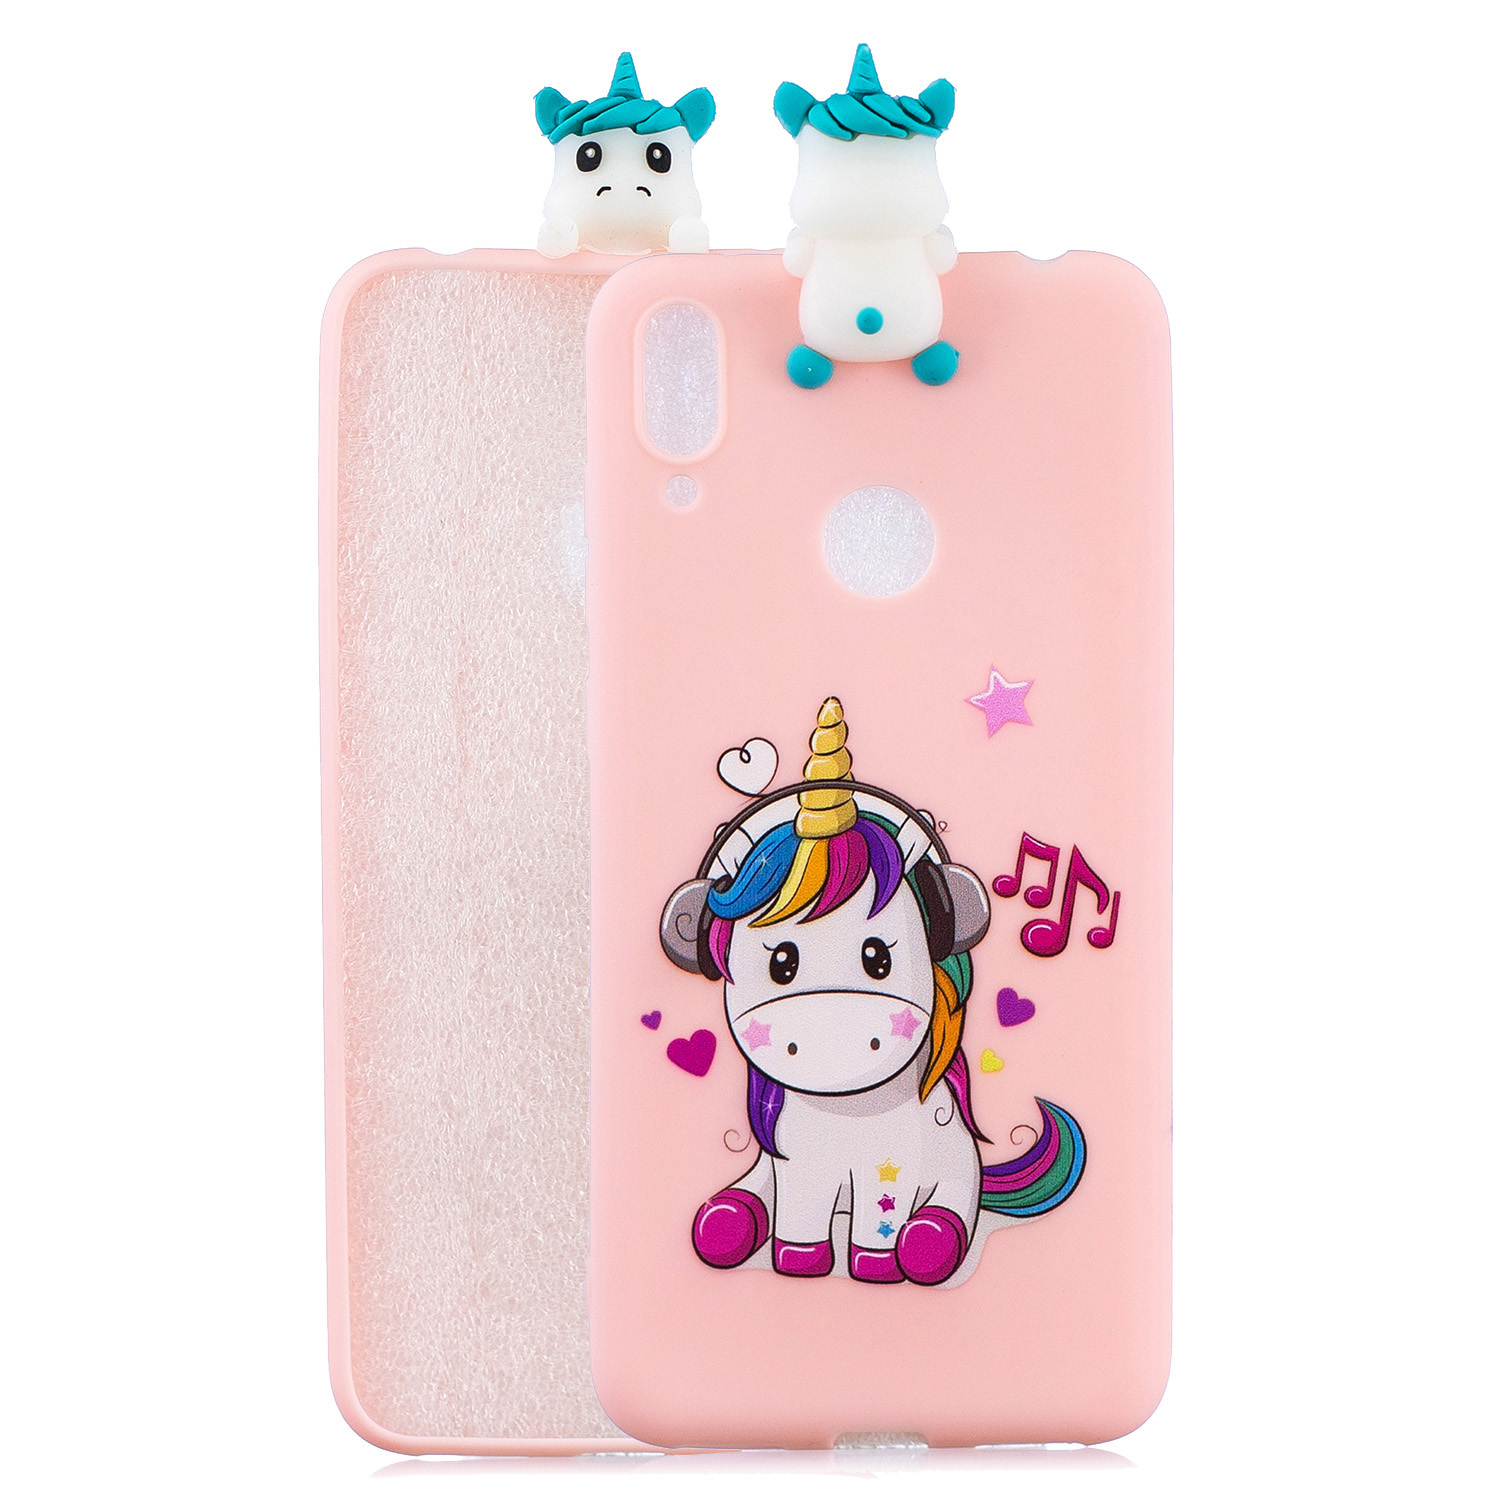 For Huawei Y6 2019 3D Cartoon Lovely Coloured Painted Soft TPU Back Cover Non-slip Shockproof Full Protective Case Music unicorn